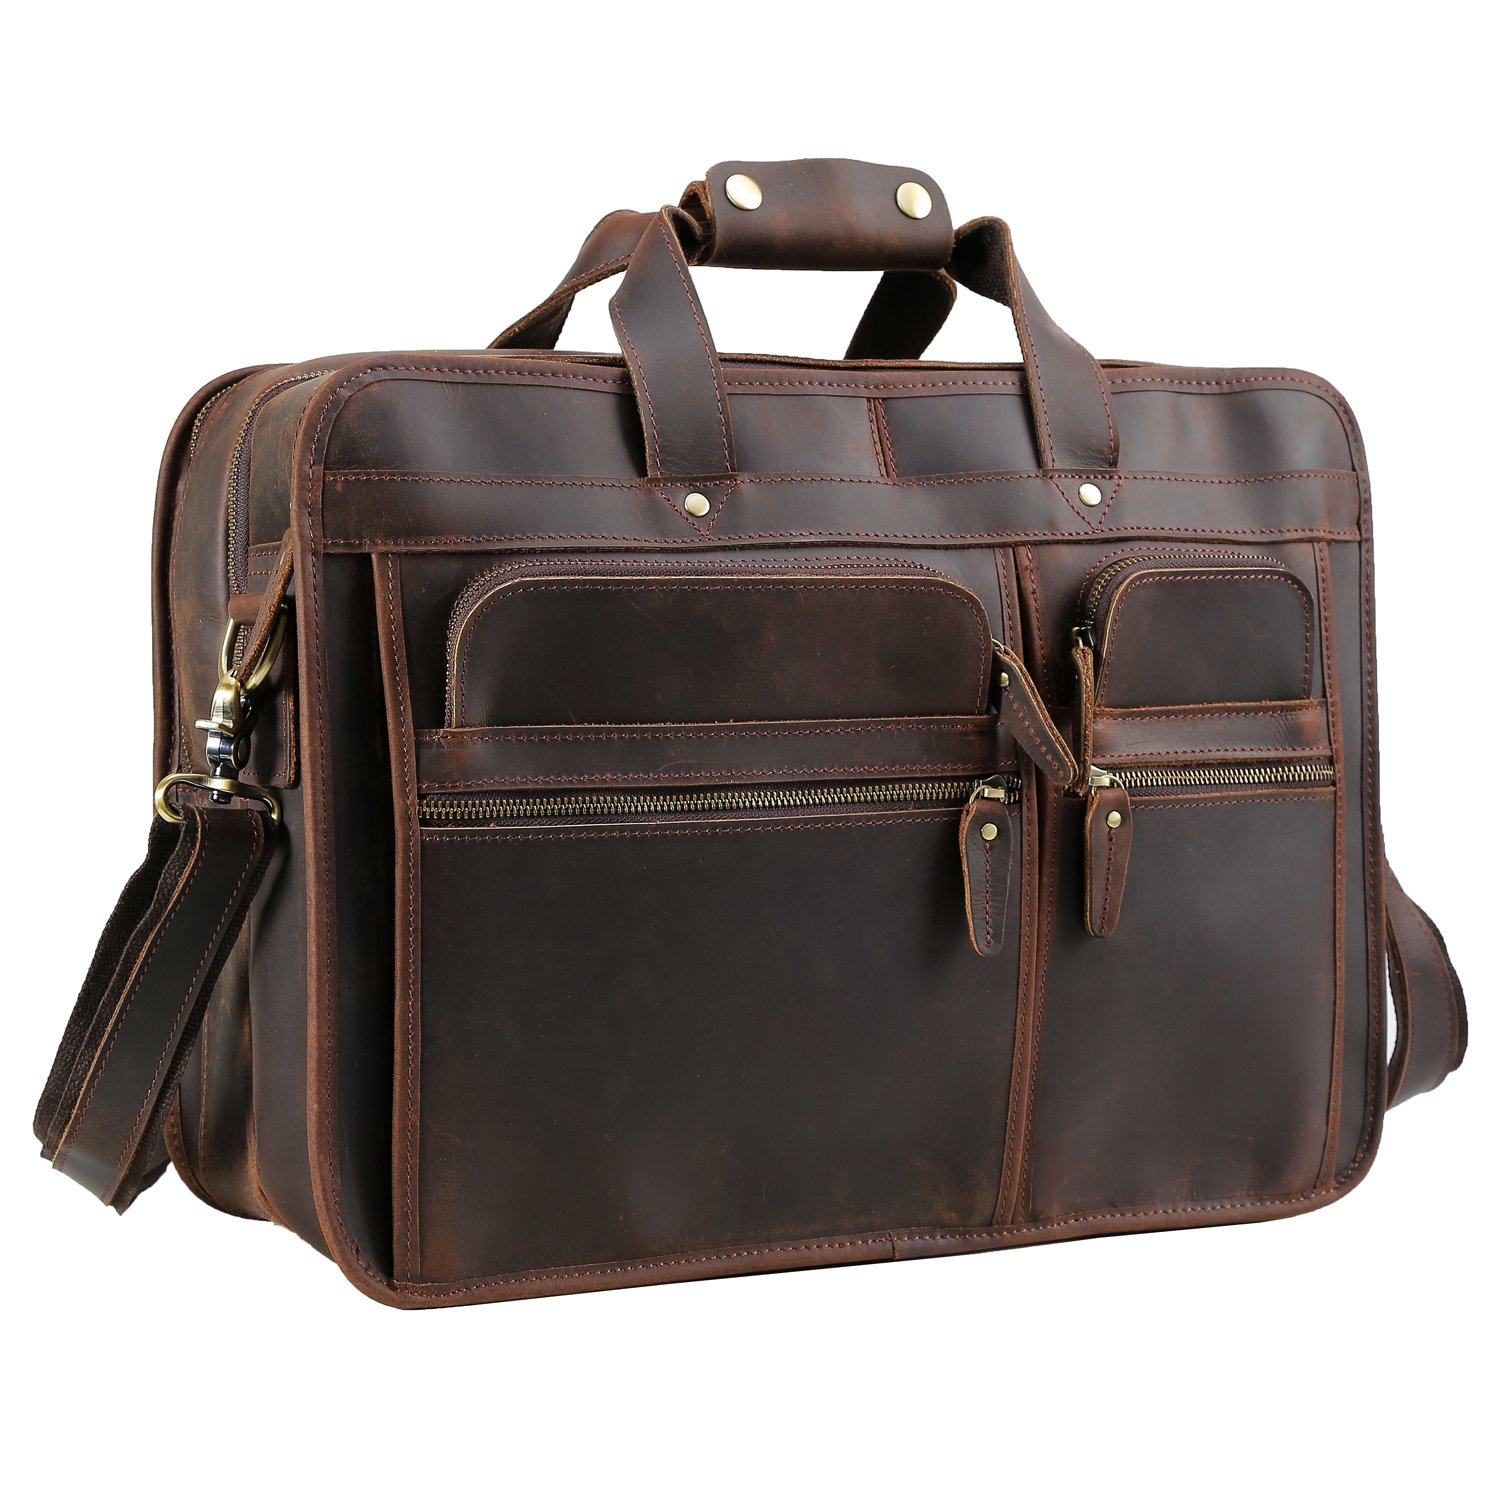 Texbo Men's Solid Full Grain Cowhide Leather Large 17 Inch Laptop Briefcase Messenger Bag Tote with YKK Metal Zipper by Texbo